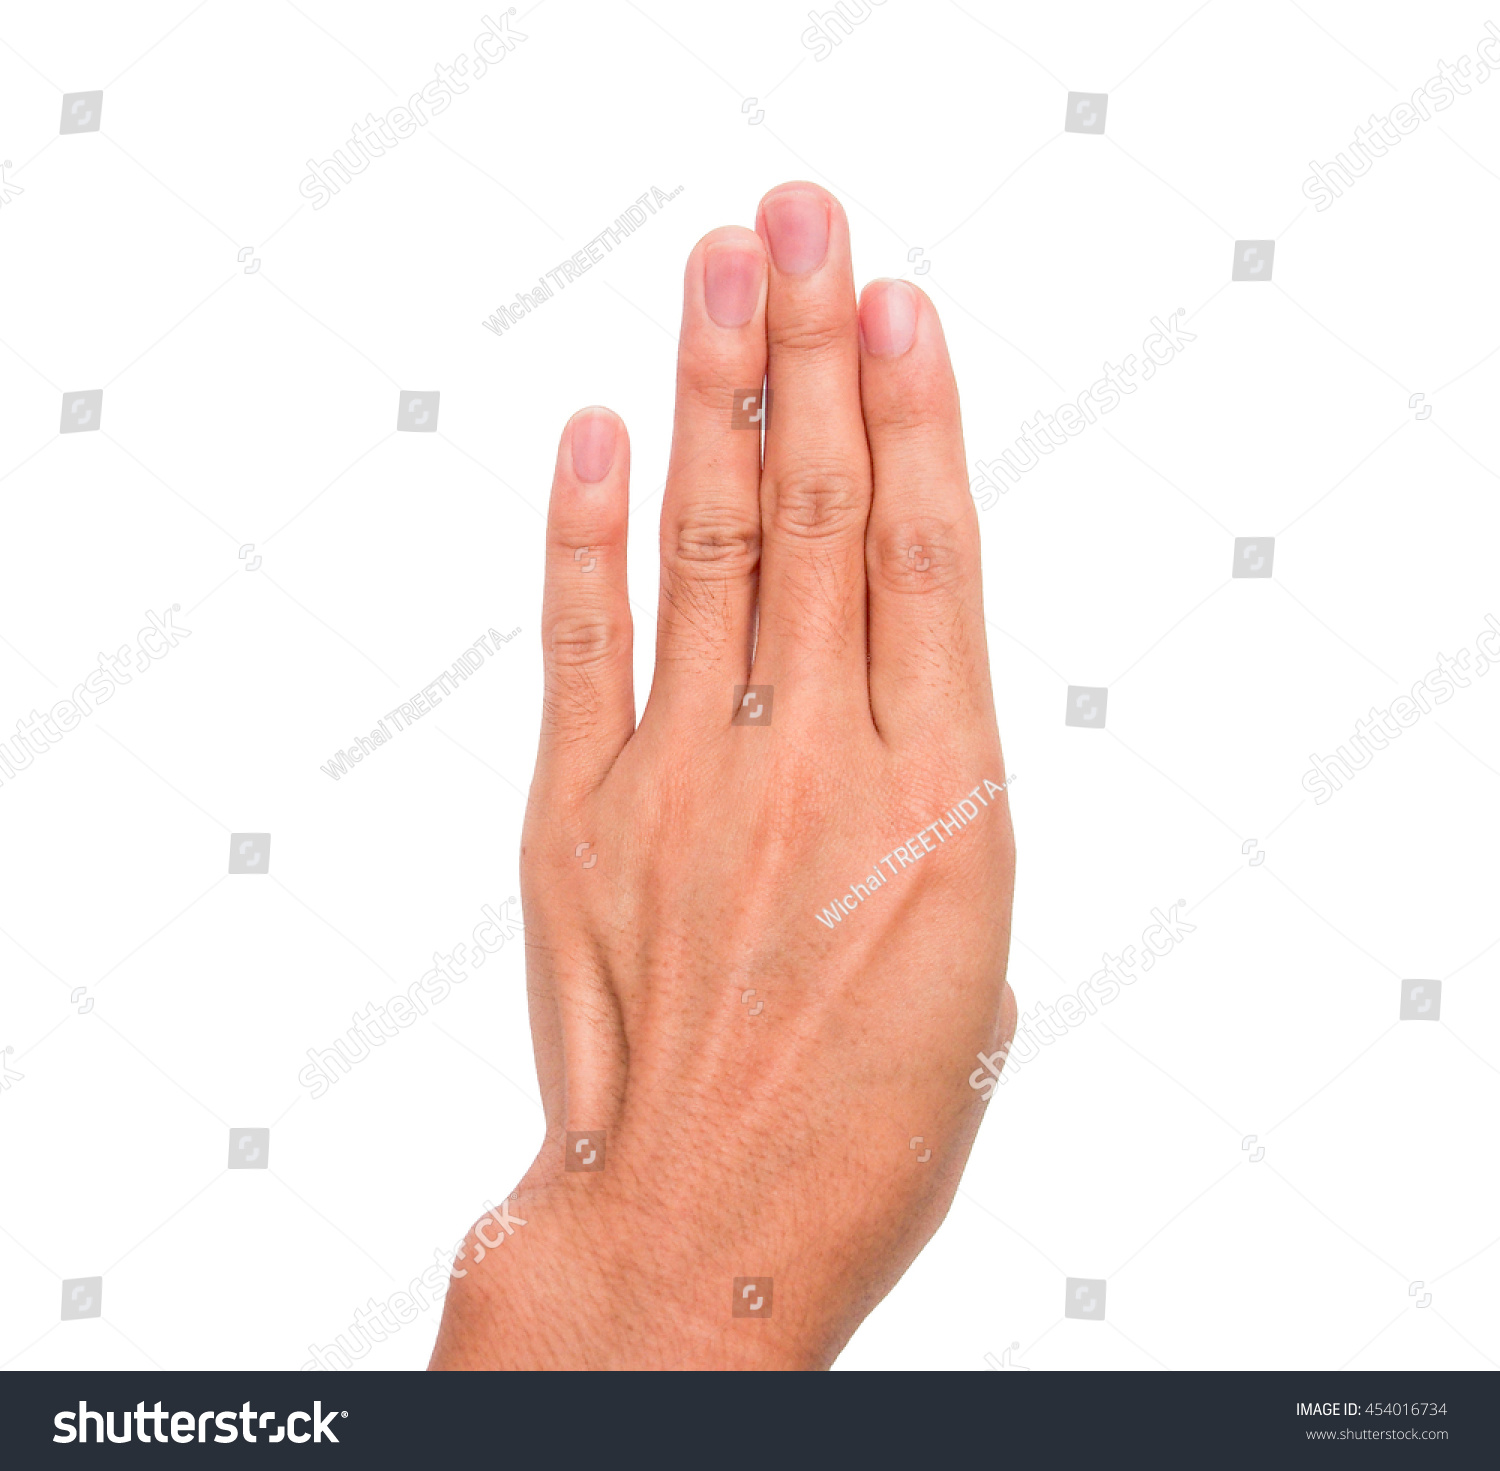 Meaning of fourth - A Hand Sign Of 4 Fingers Point Upward Meaning Four Fourth Etc With